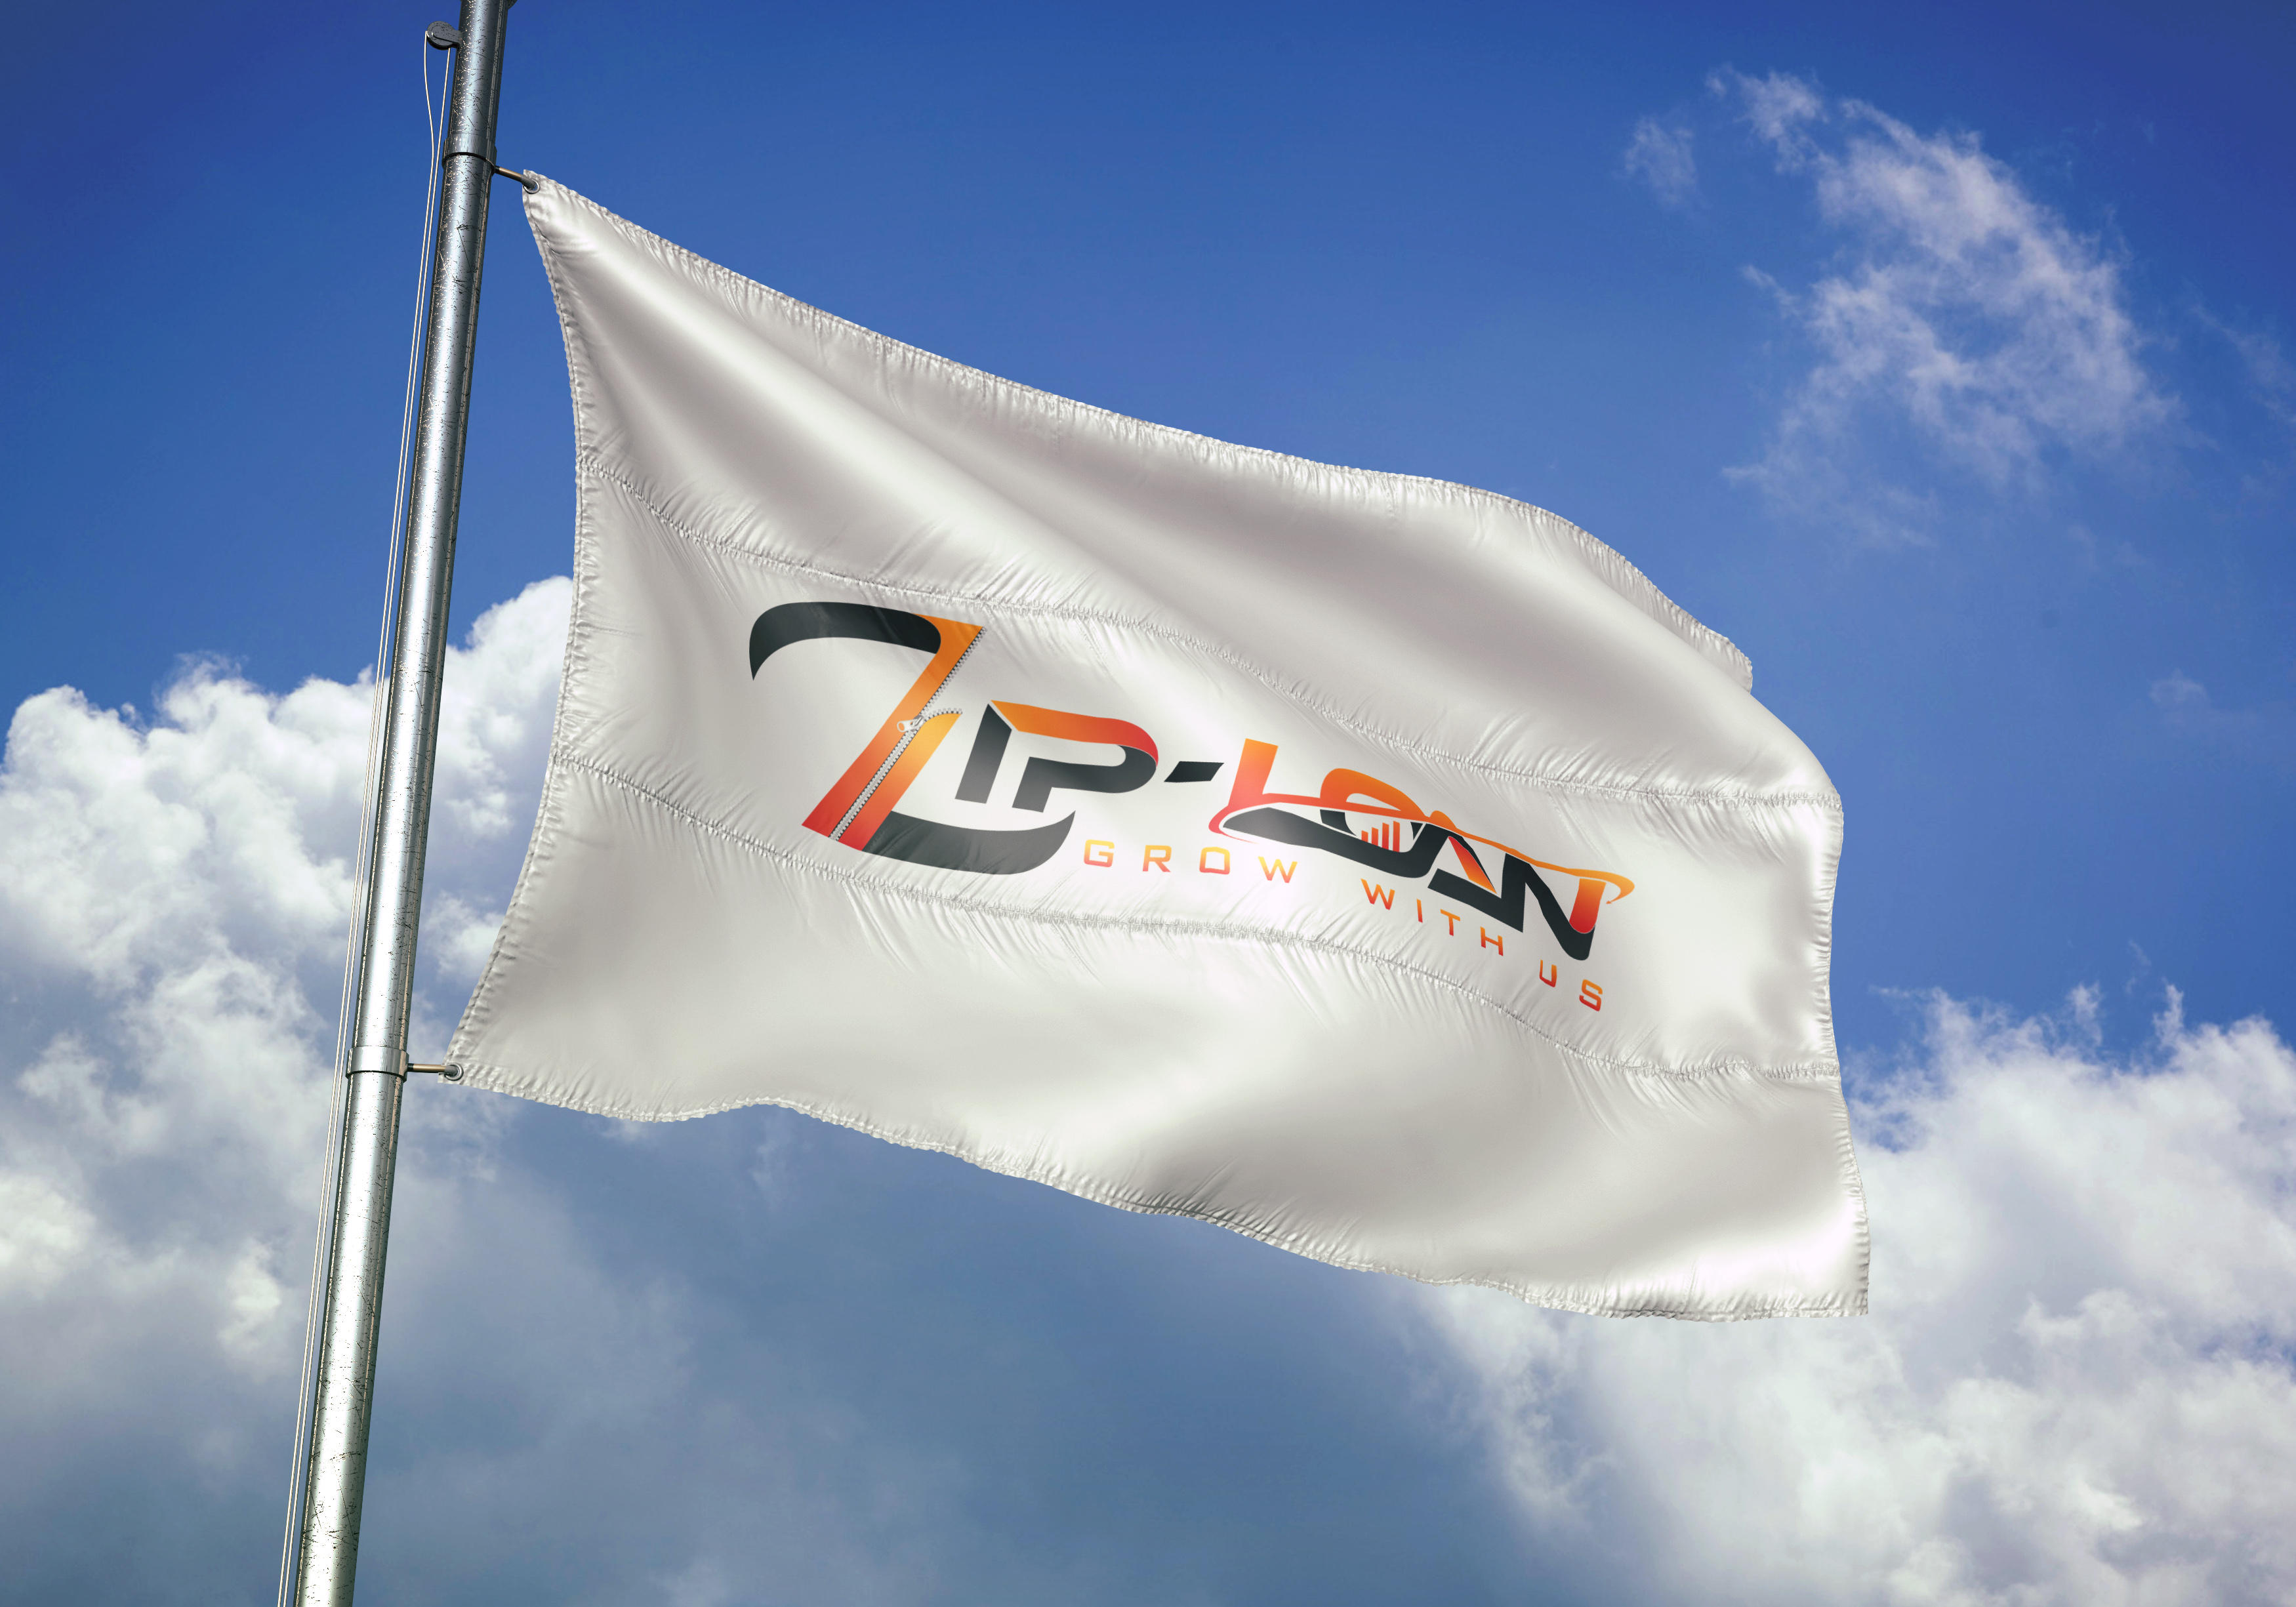 Zip Loan Powered by Consolidated Companies image 4